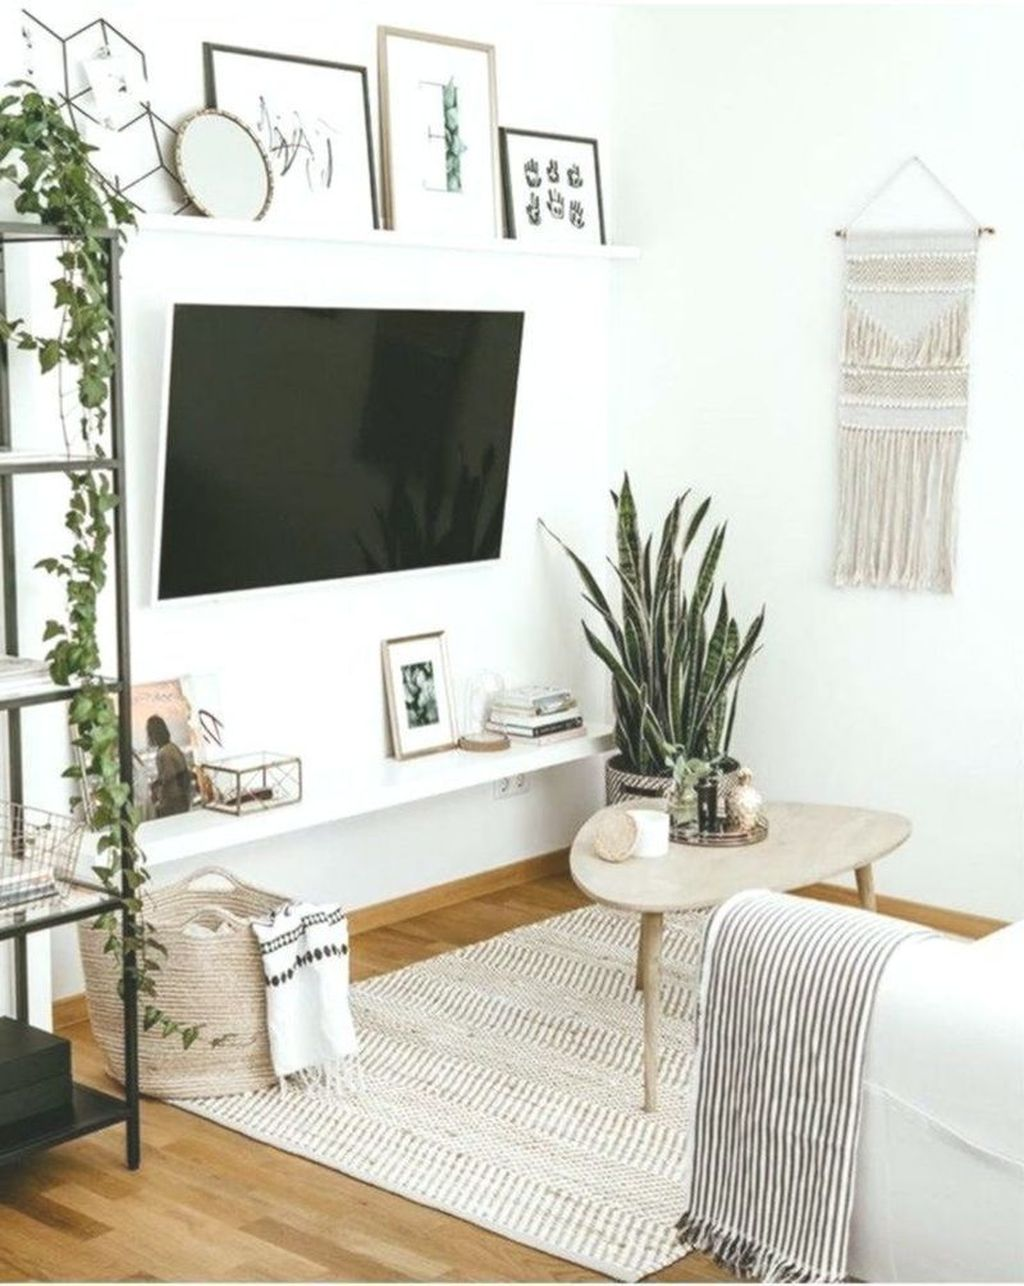 Recommended Minimalist Living Room Decor Ideas That Will Inspire You 04